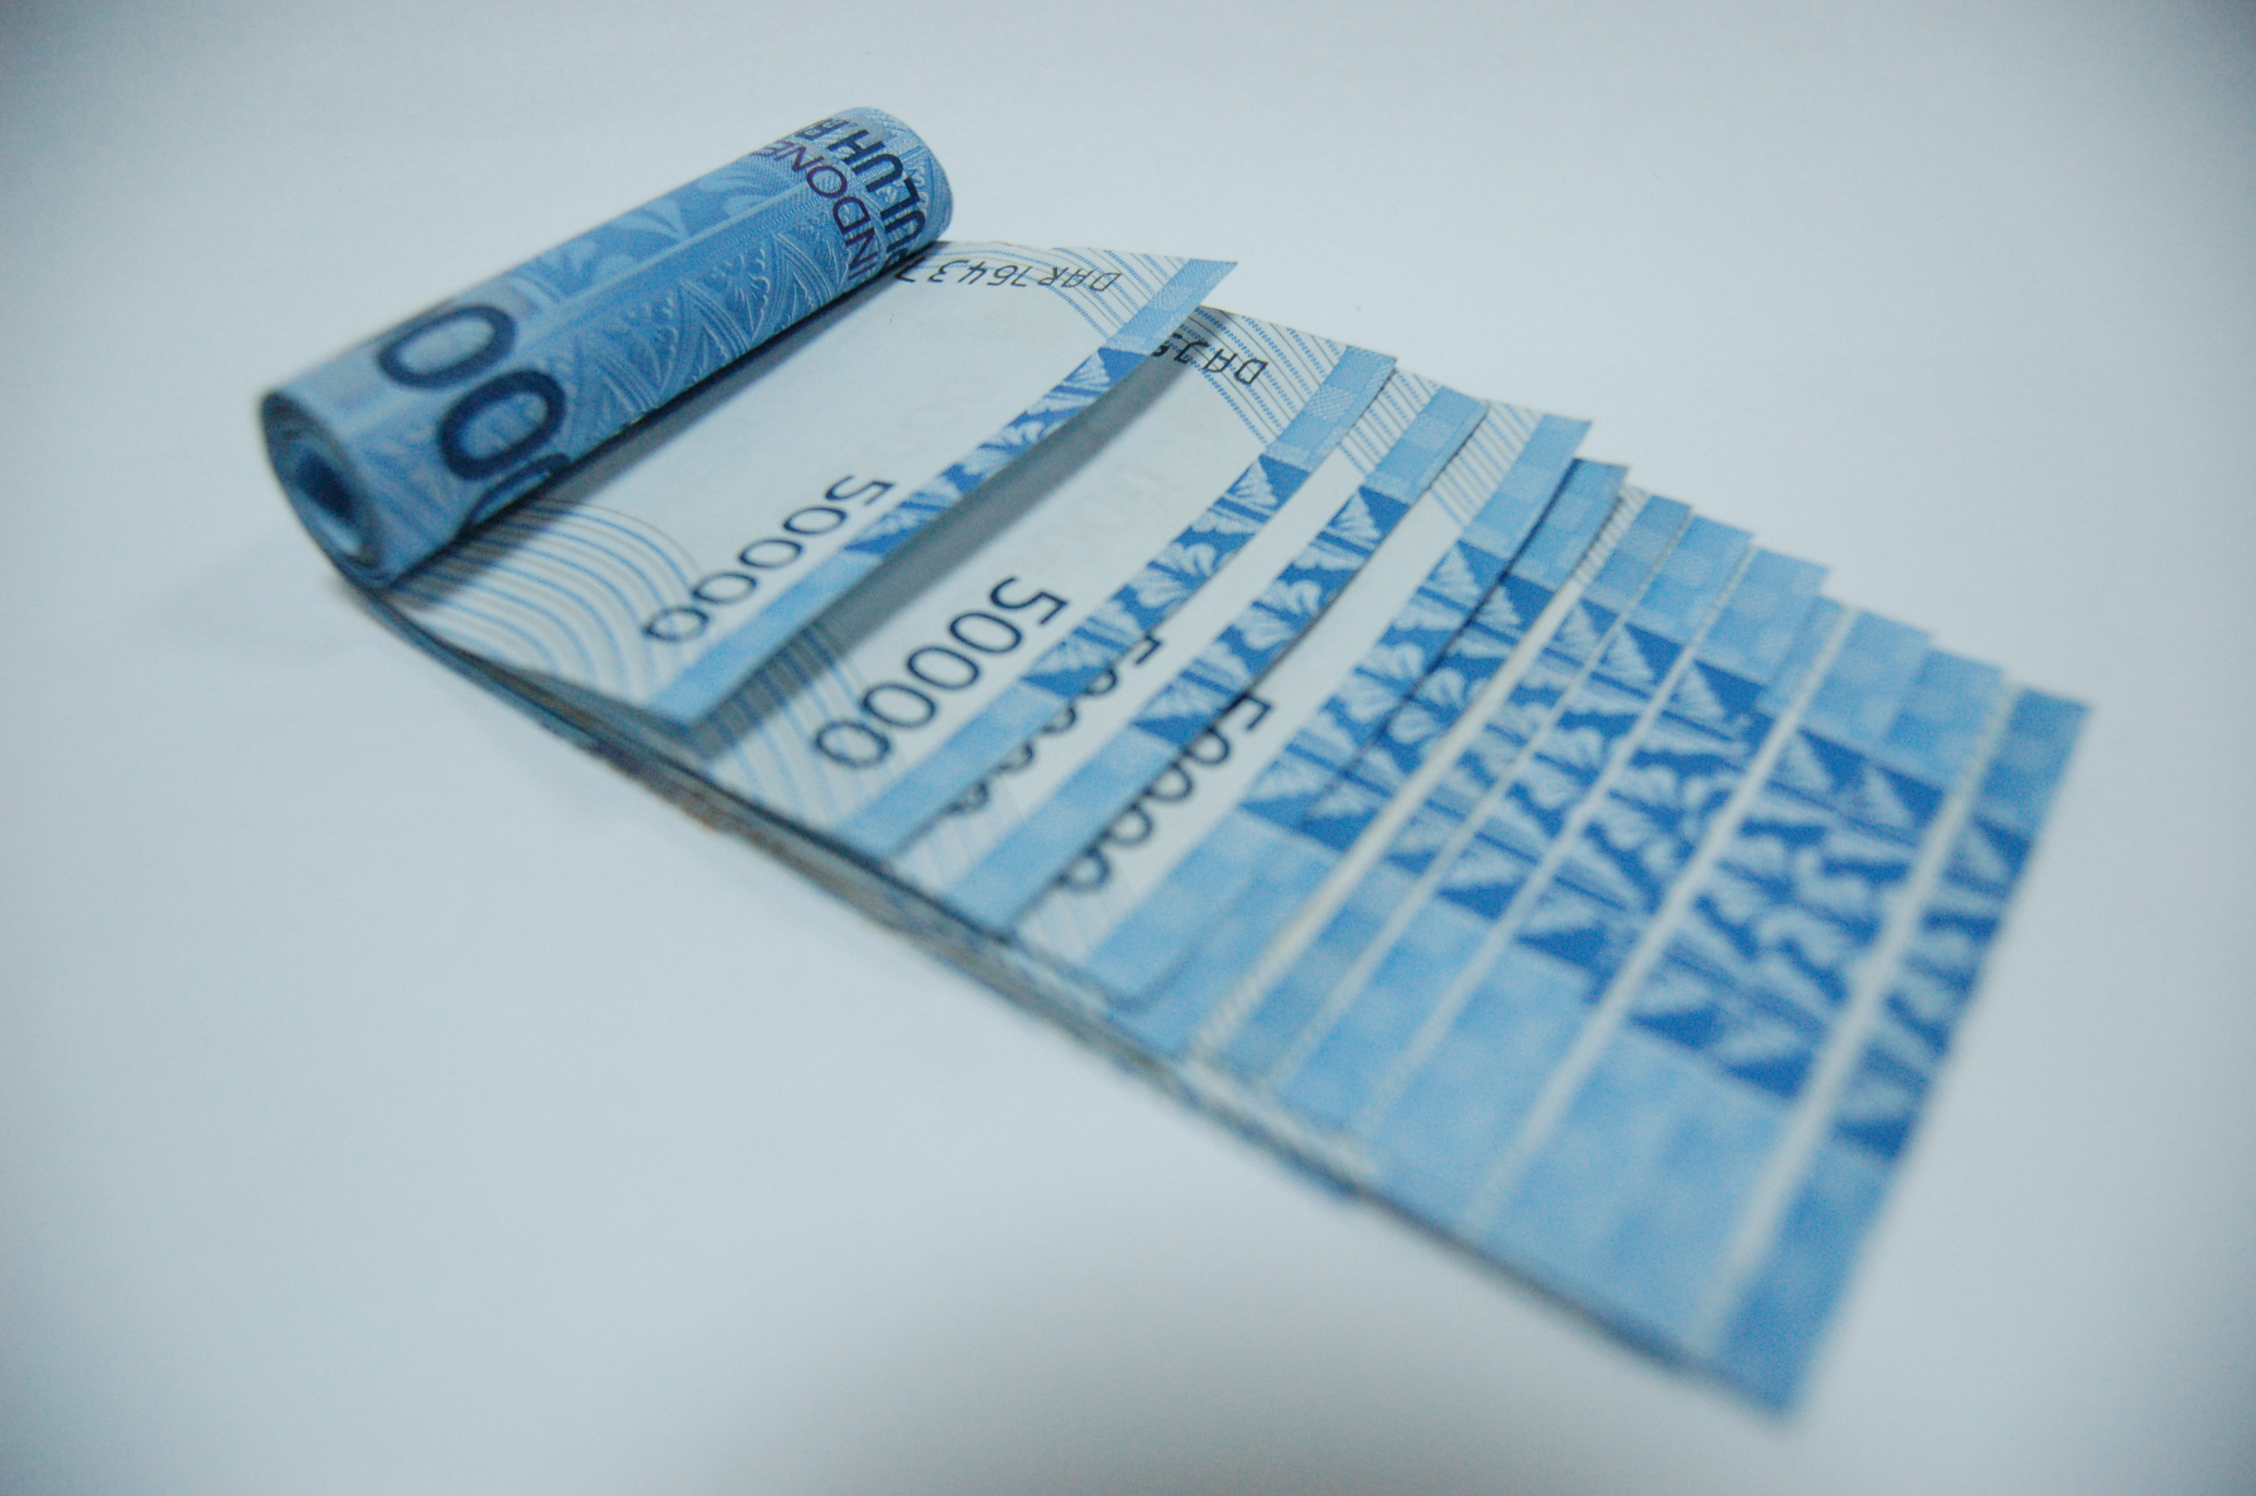 Indonesian Bank Note, Bank, Blue, Bspo06, Indonesia, HQ Photo